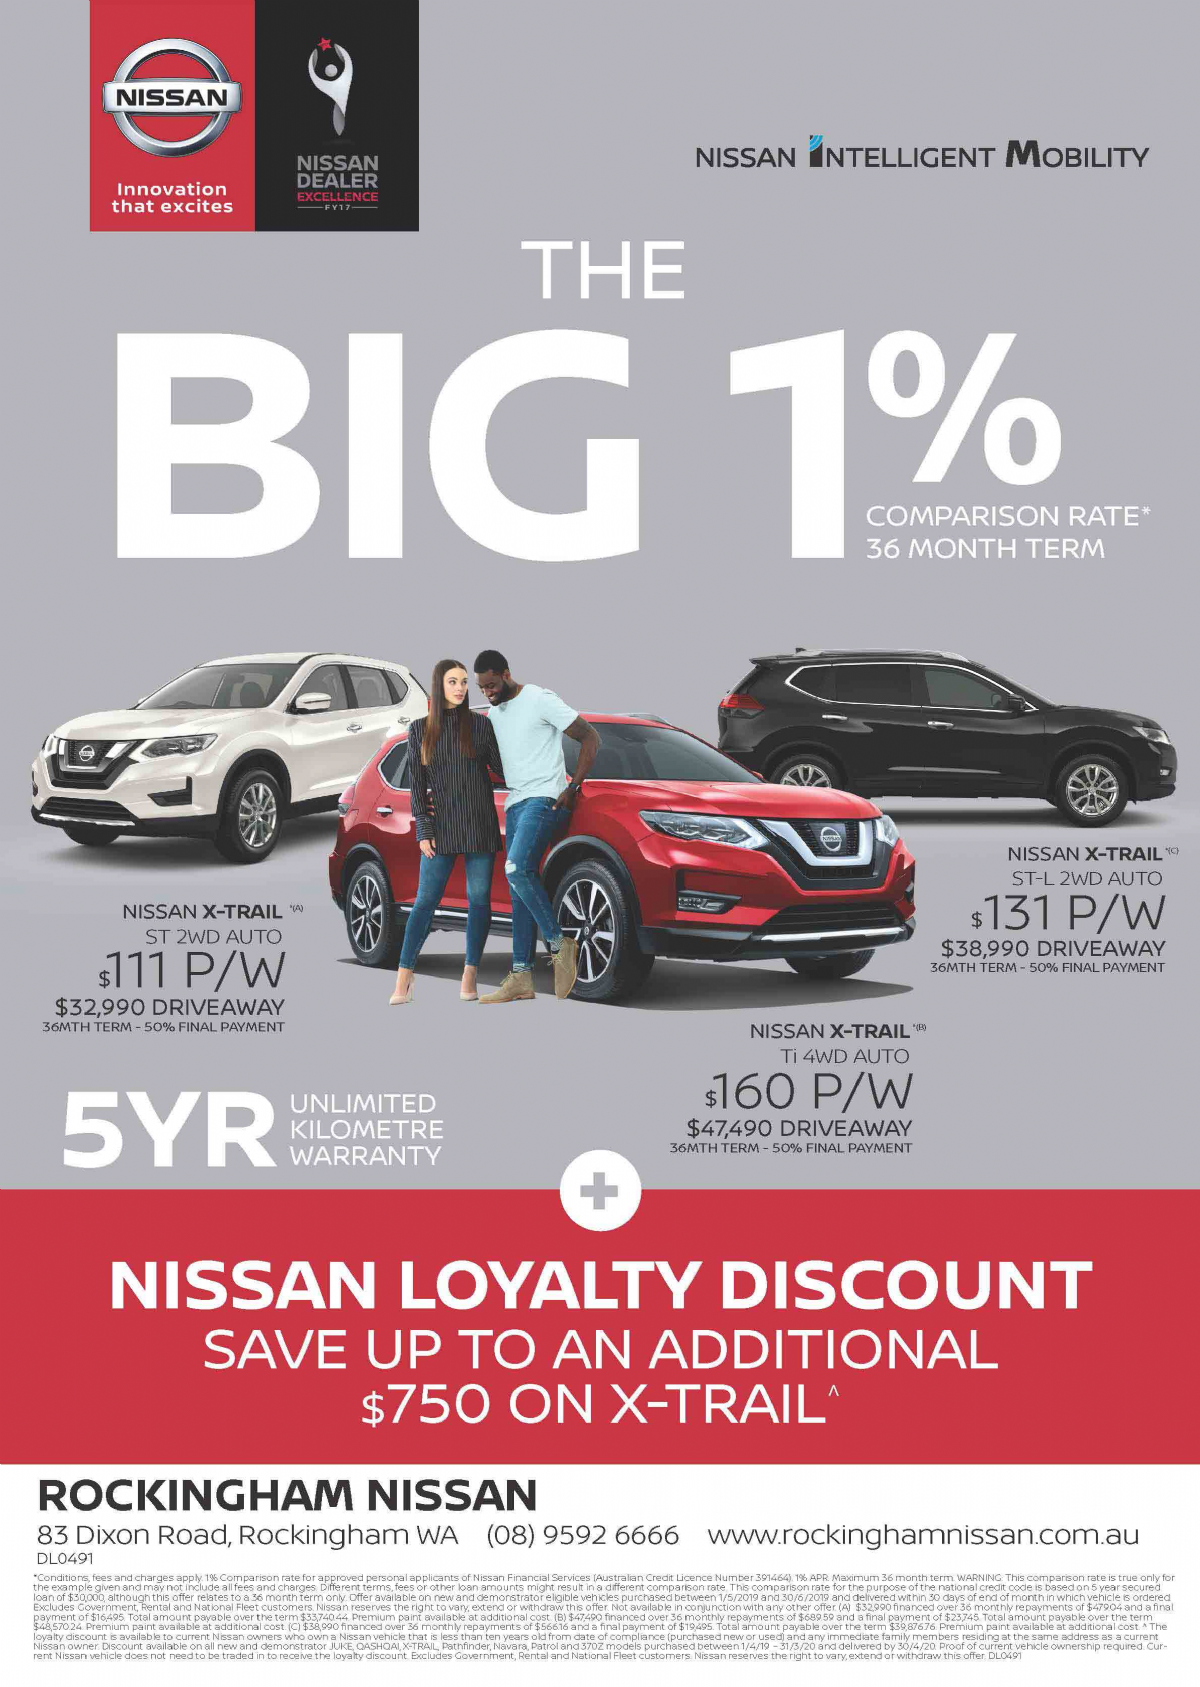 Nissan The Big 1% X-Trail